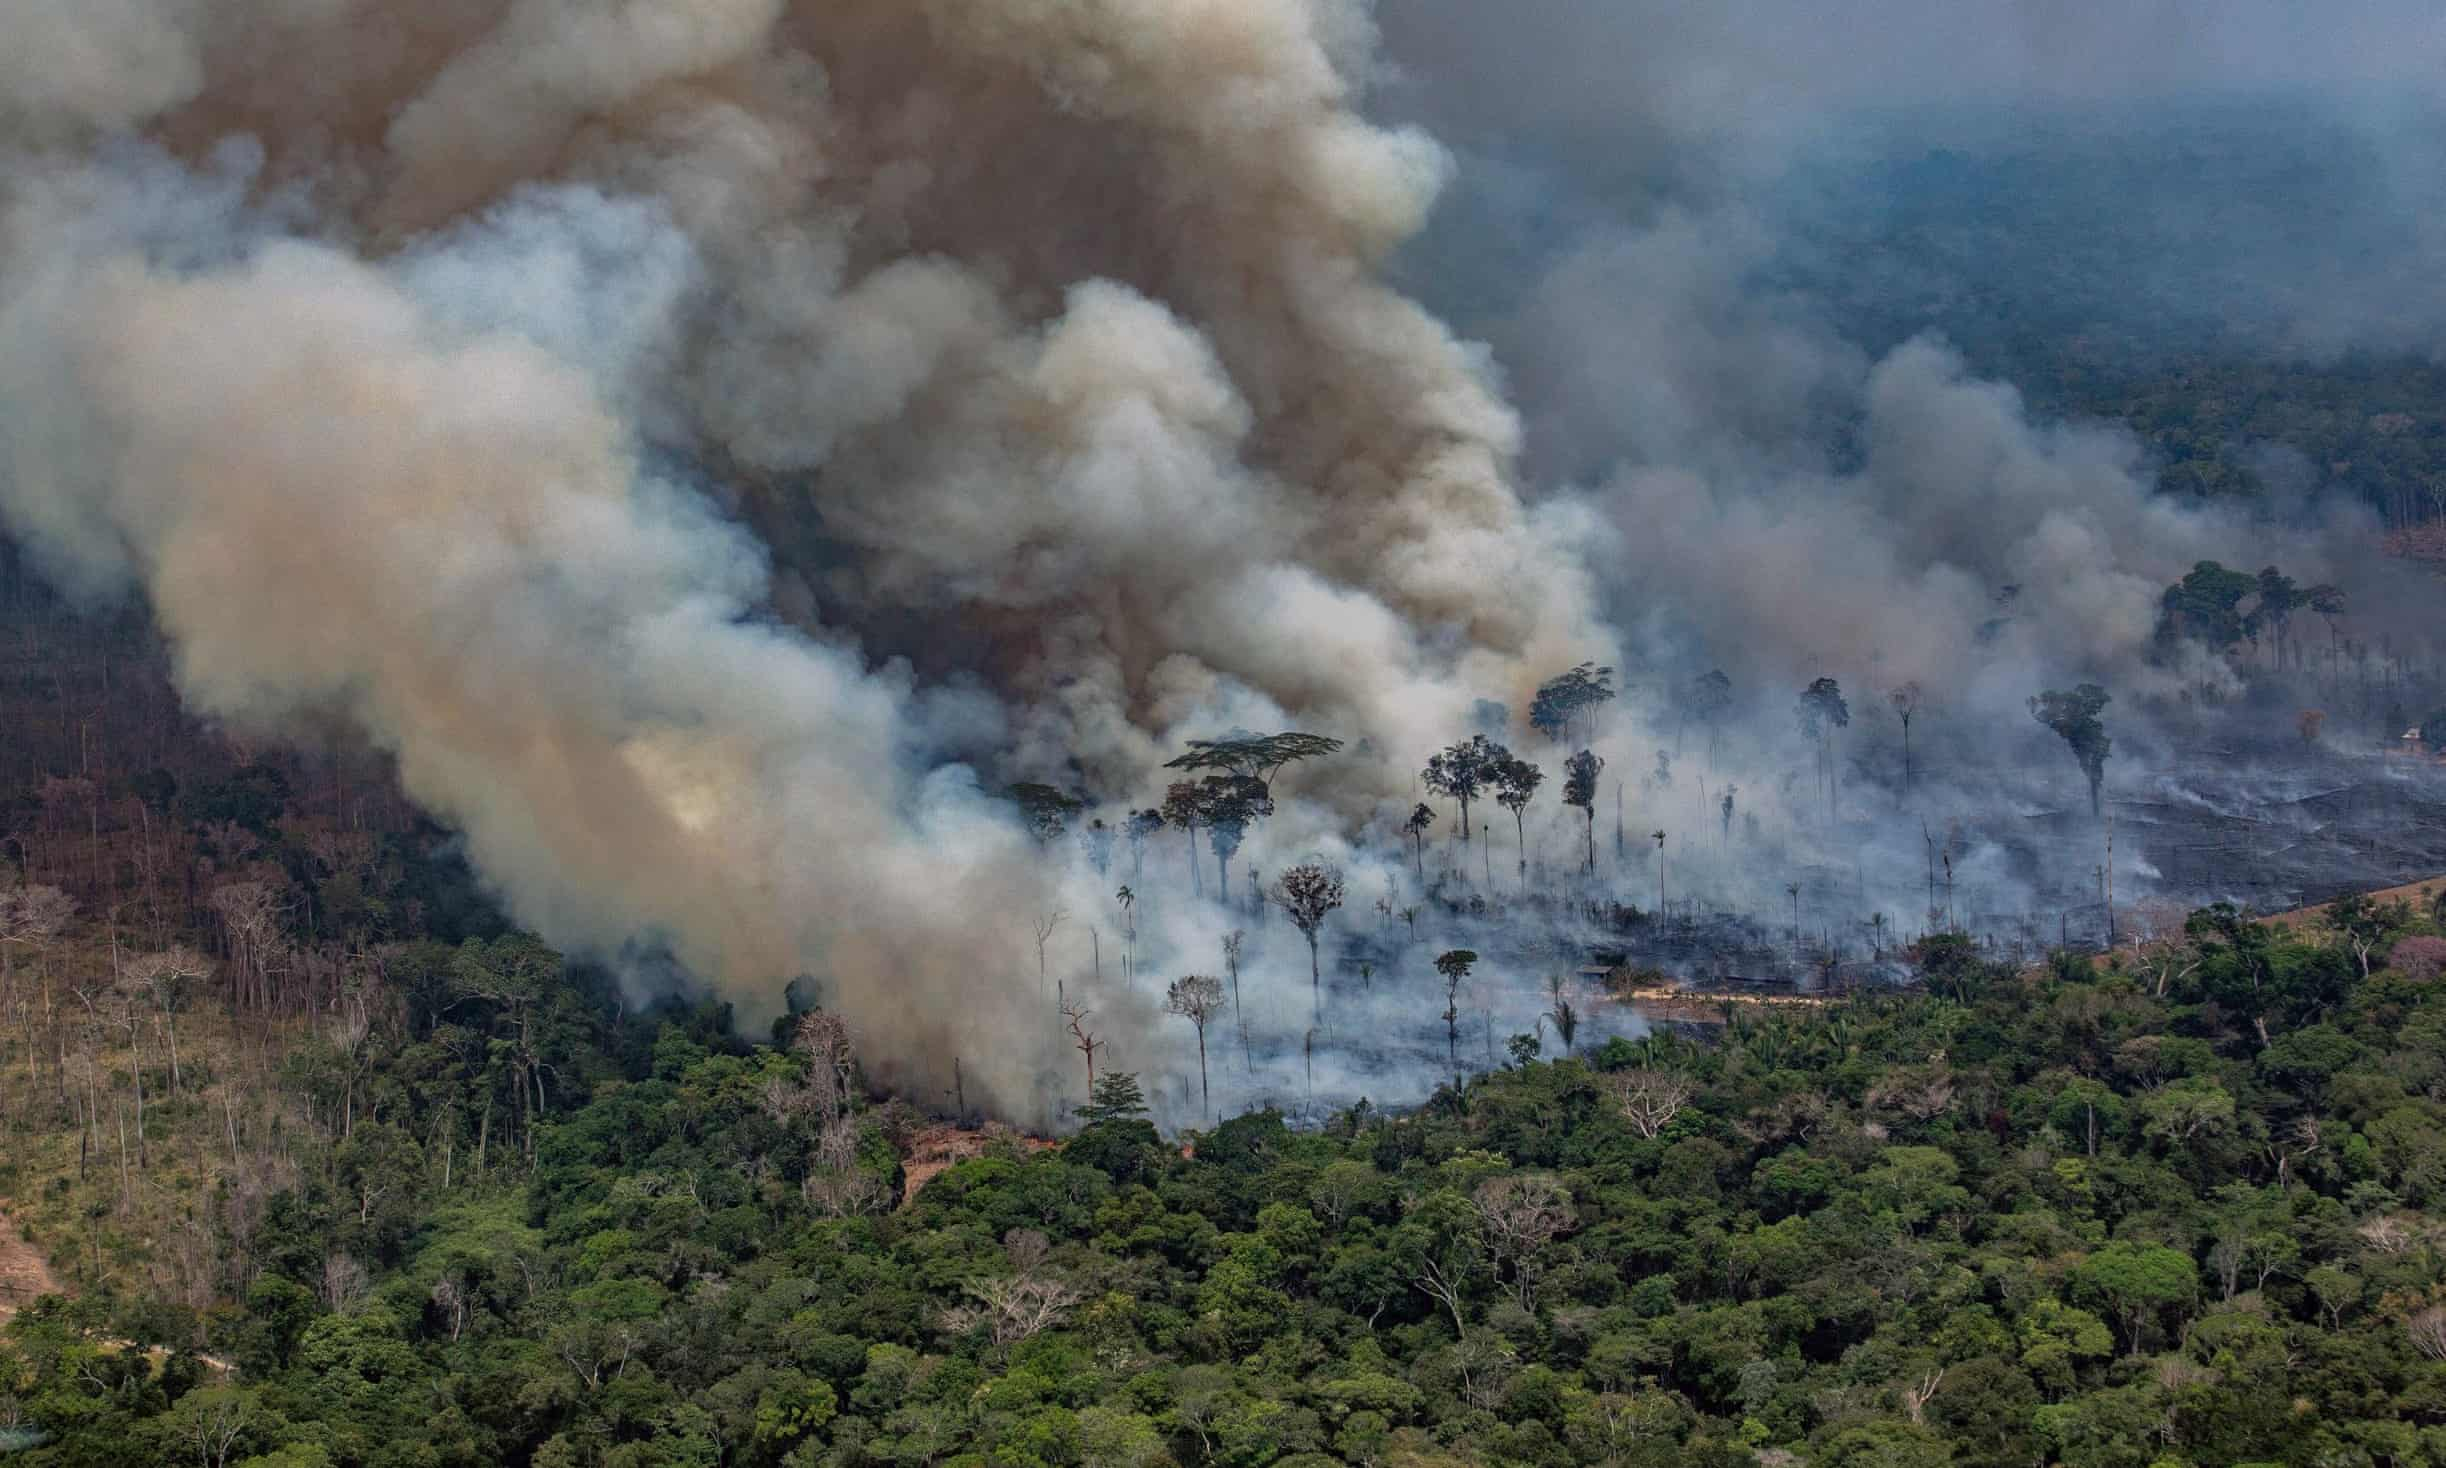 The Amazon Fires: Why They Are Happening And What We Can Do About It.